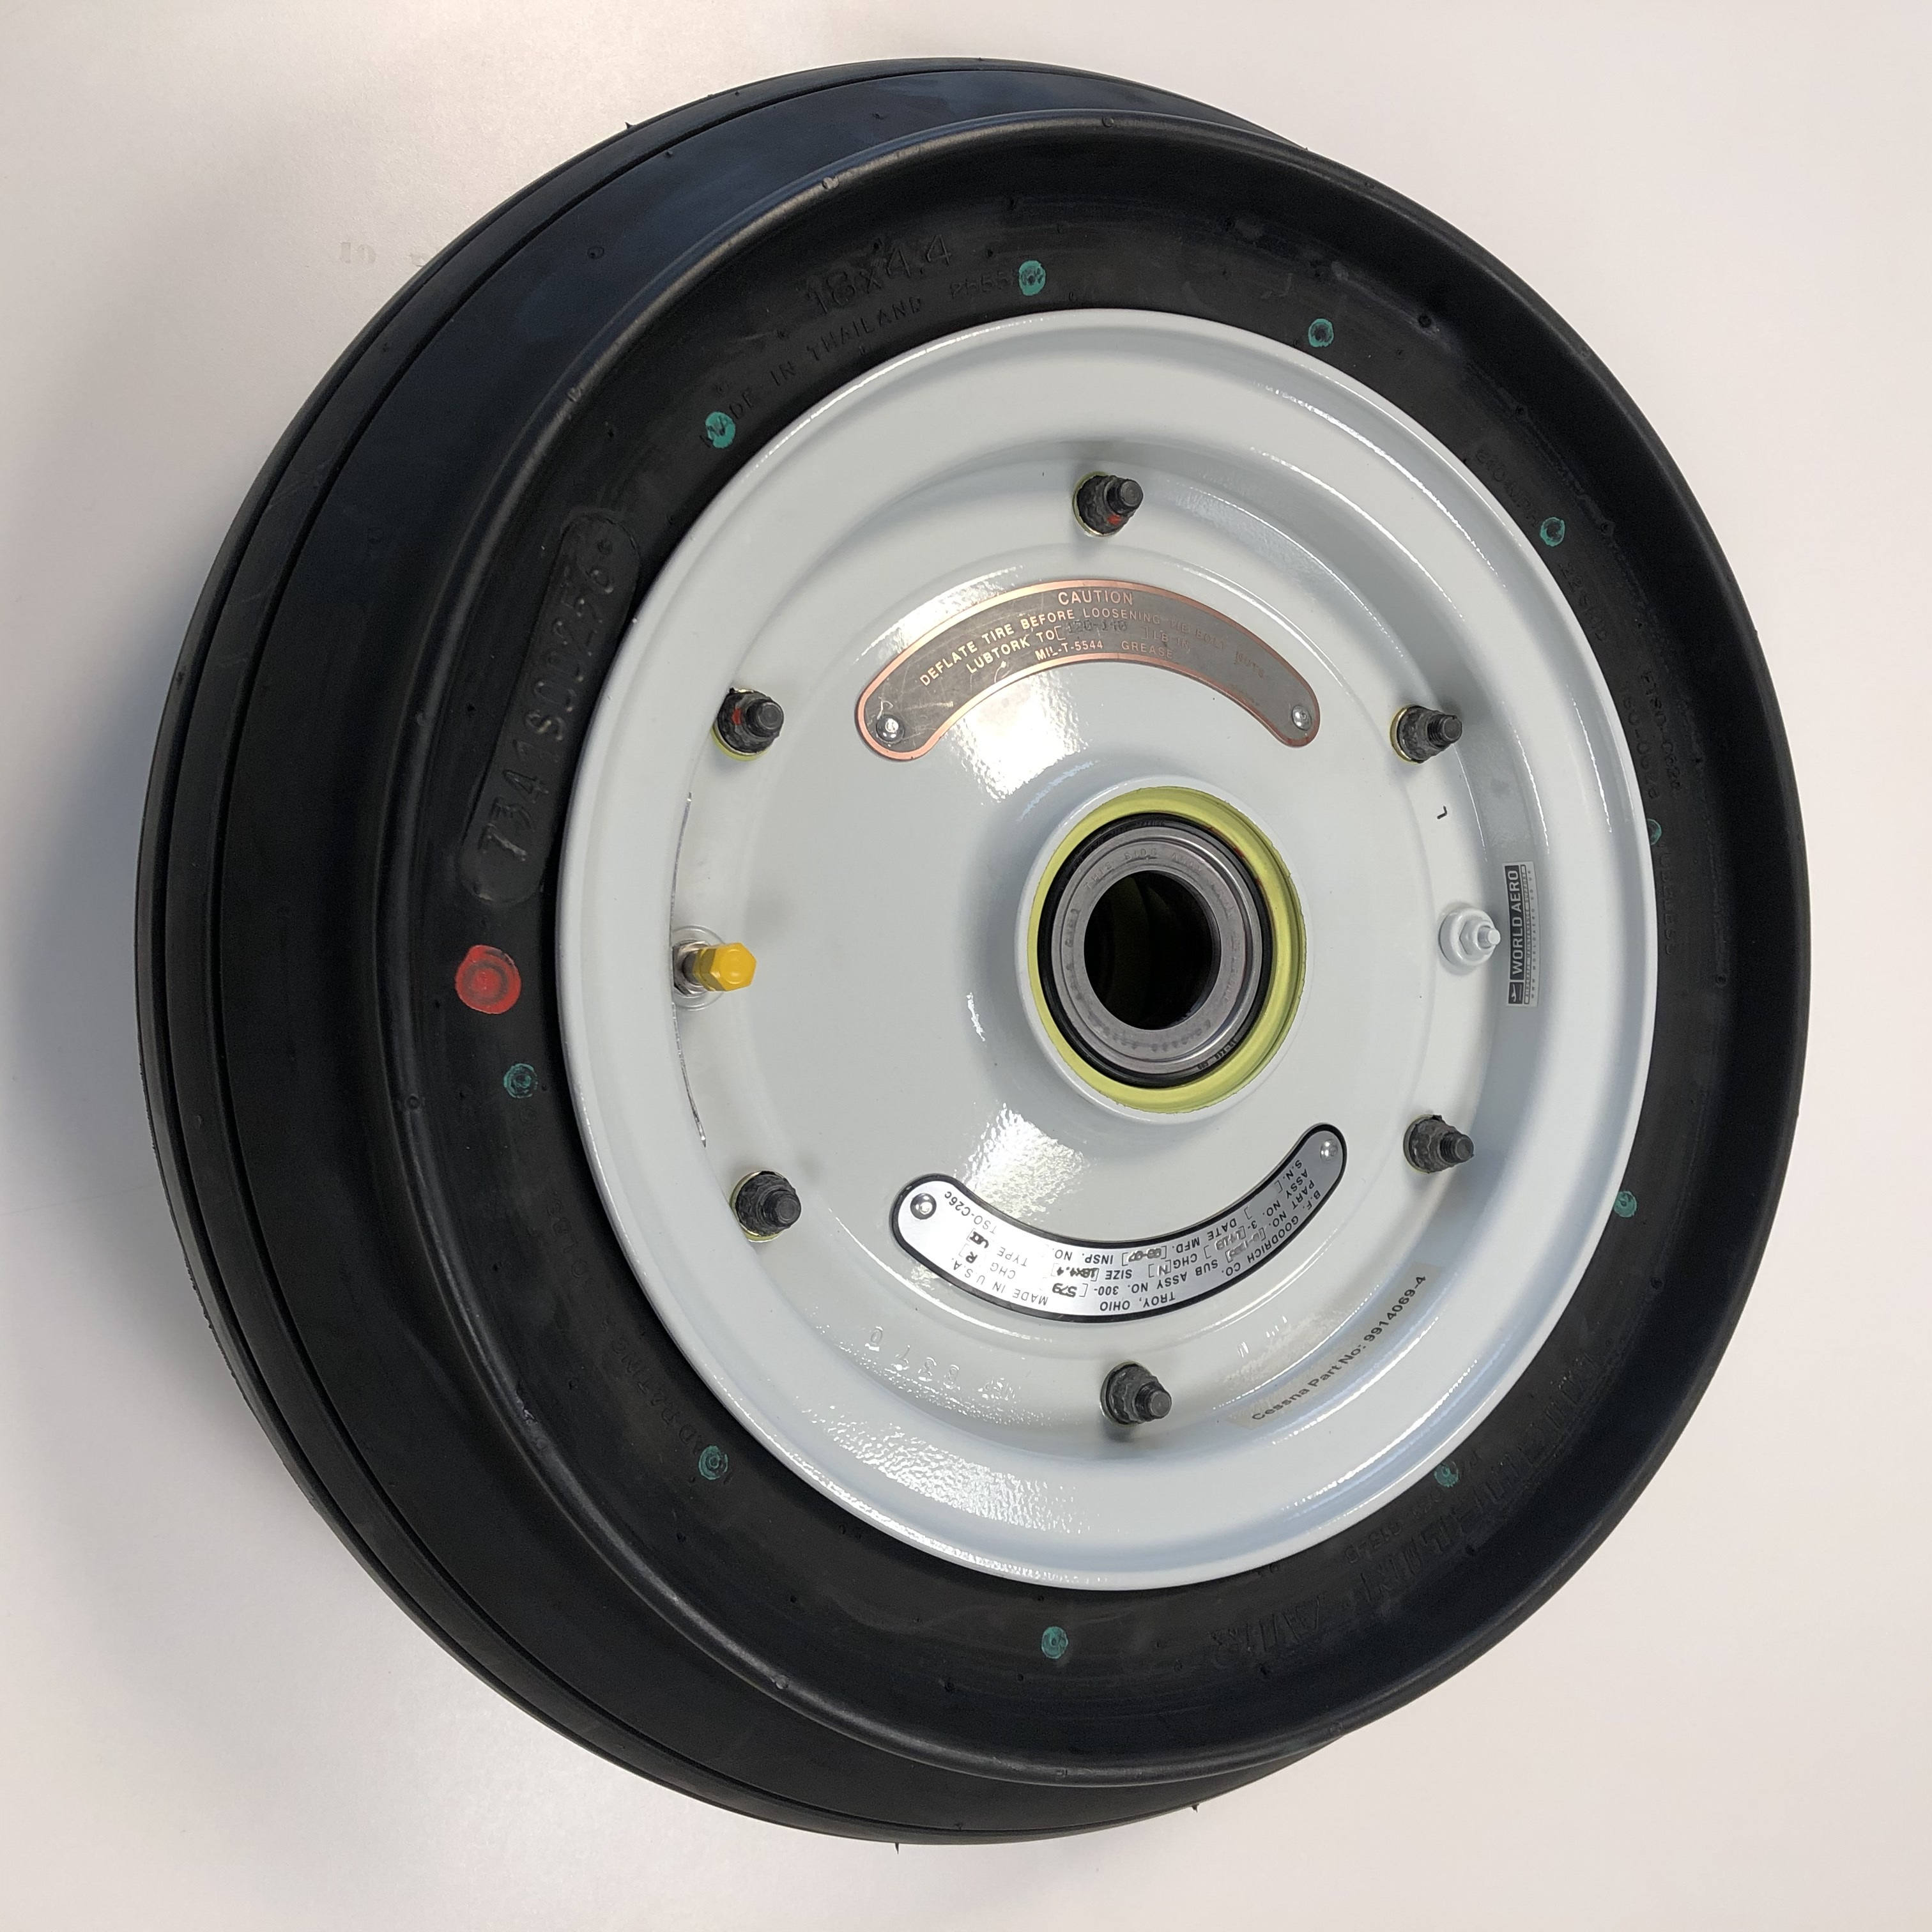 6242050-9 Cessna 560XL nose wheel and tyre tire